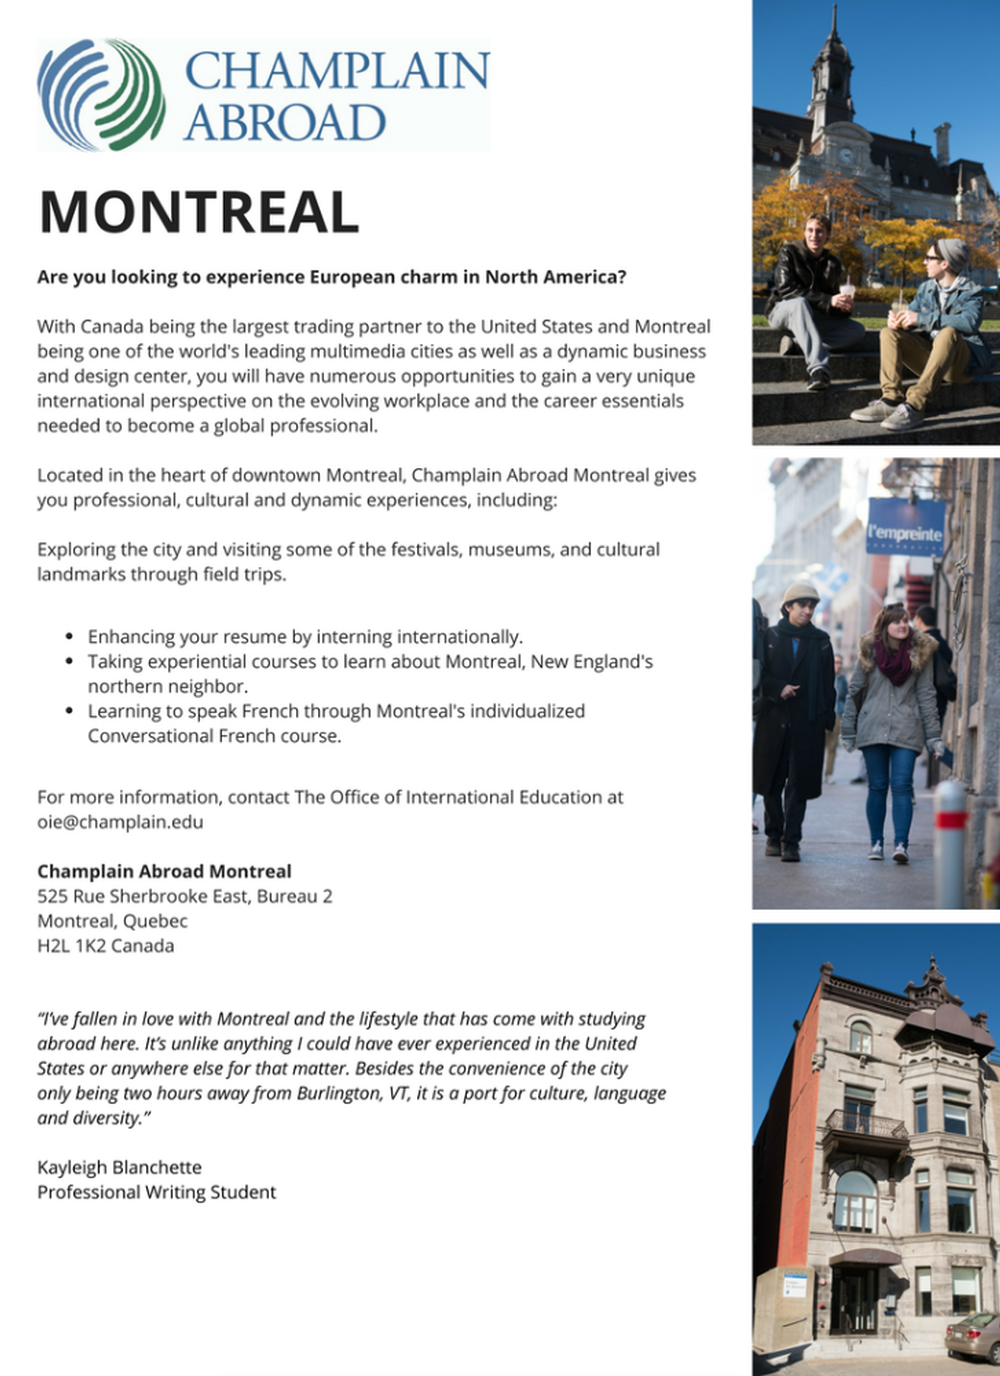 Montreal Brochure Text